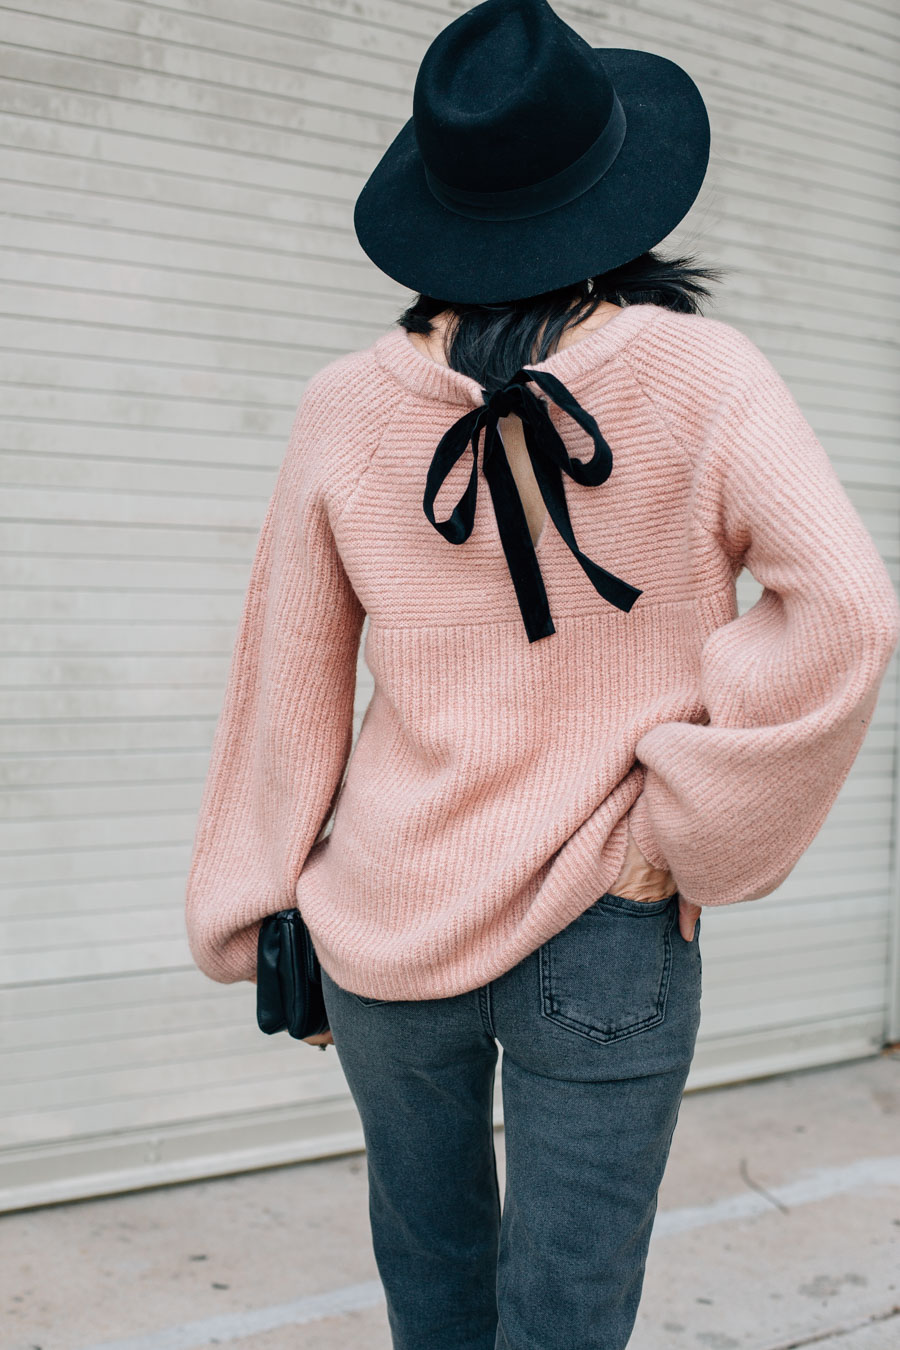 Style blogger Lilly Beltran wearing a chunky pink sweater with balloon sleeves and a black velvet bow on the back